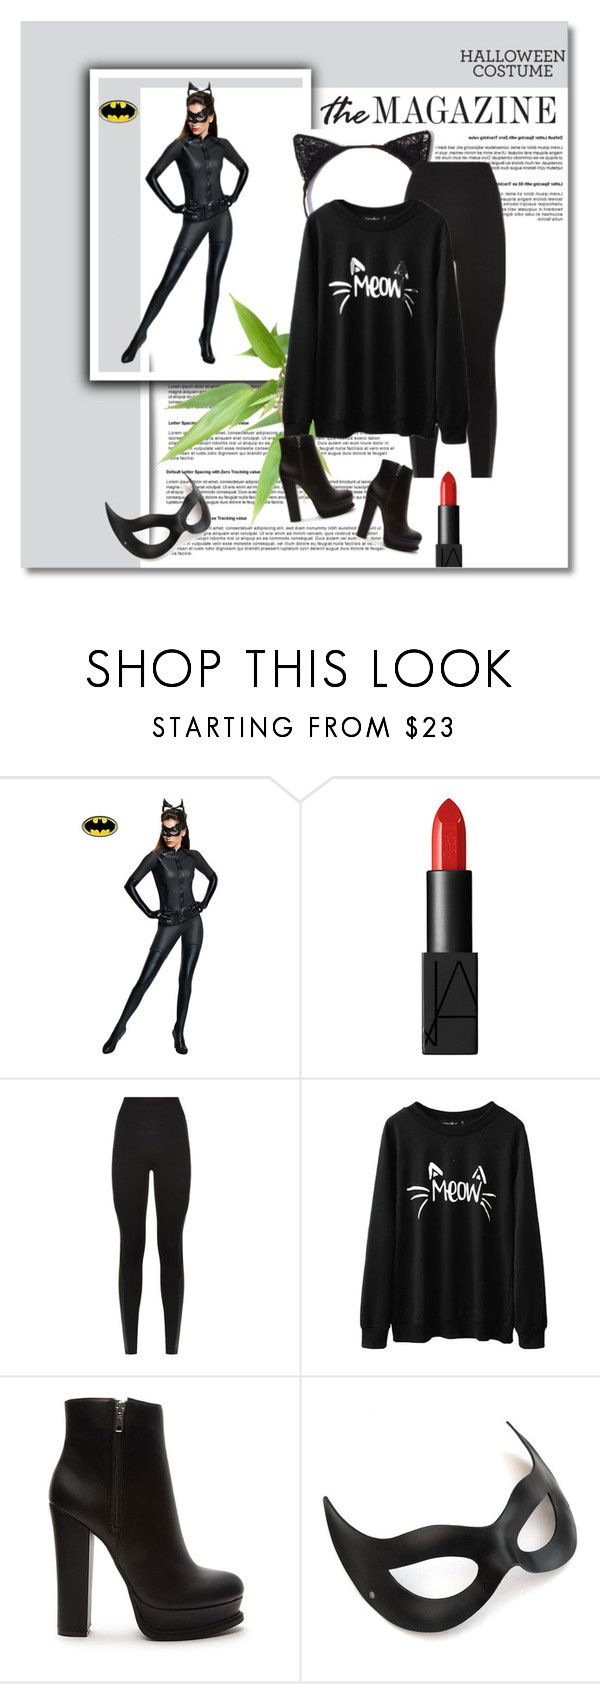 """""""DIY Cat Costume"""" by shell-721 ❤ liked on Polyvore featuring Rubie's Costume Co., NARS Cosmetics, SPANX, Forever 21 and halloweencostume"""